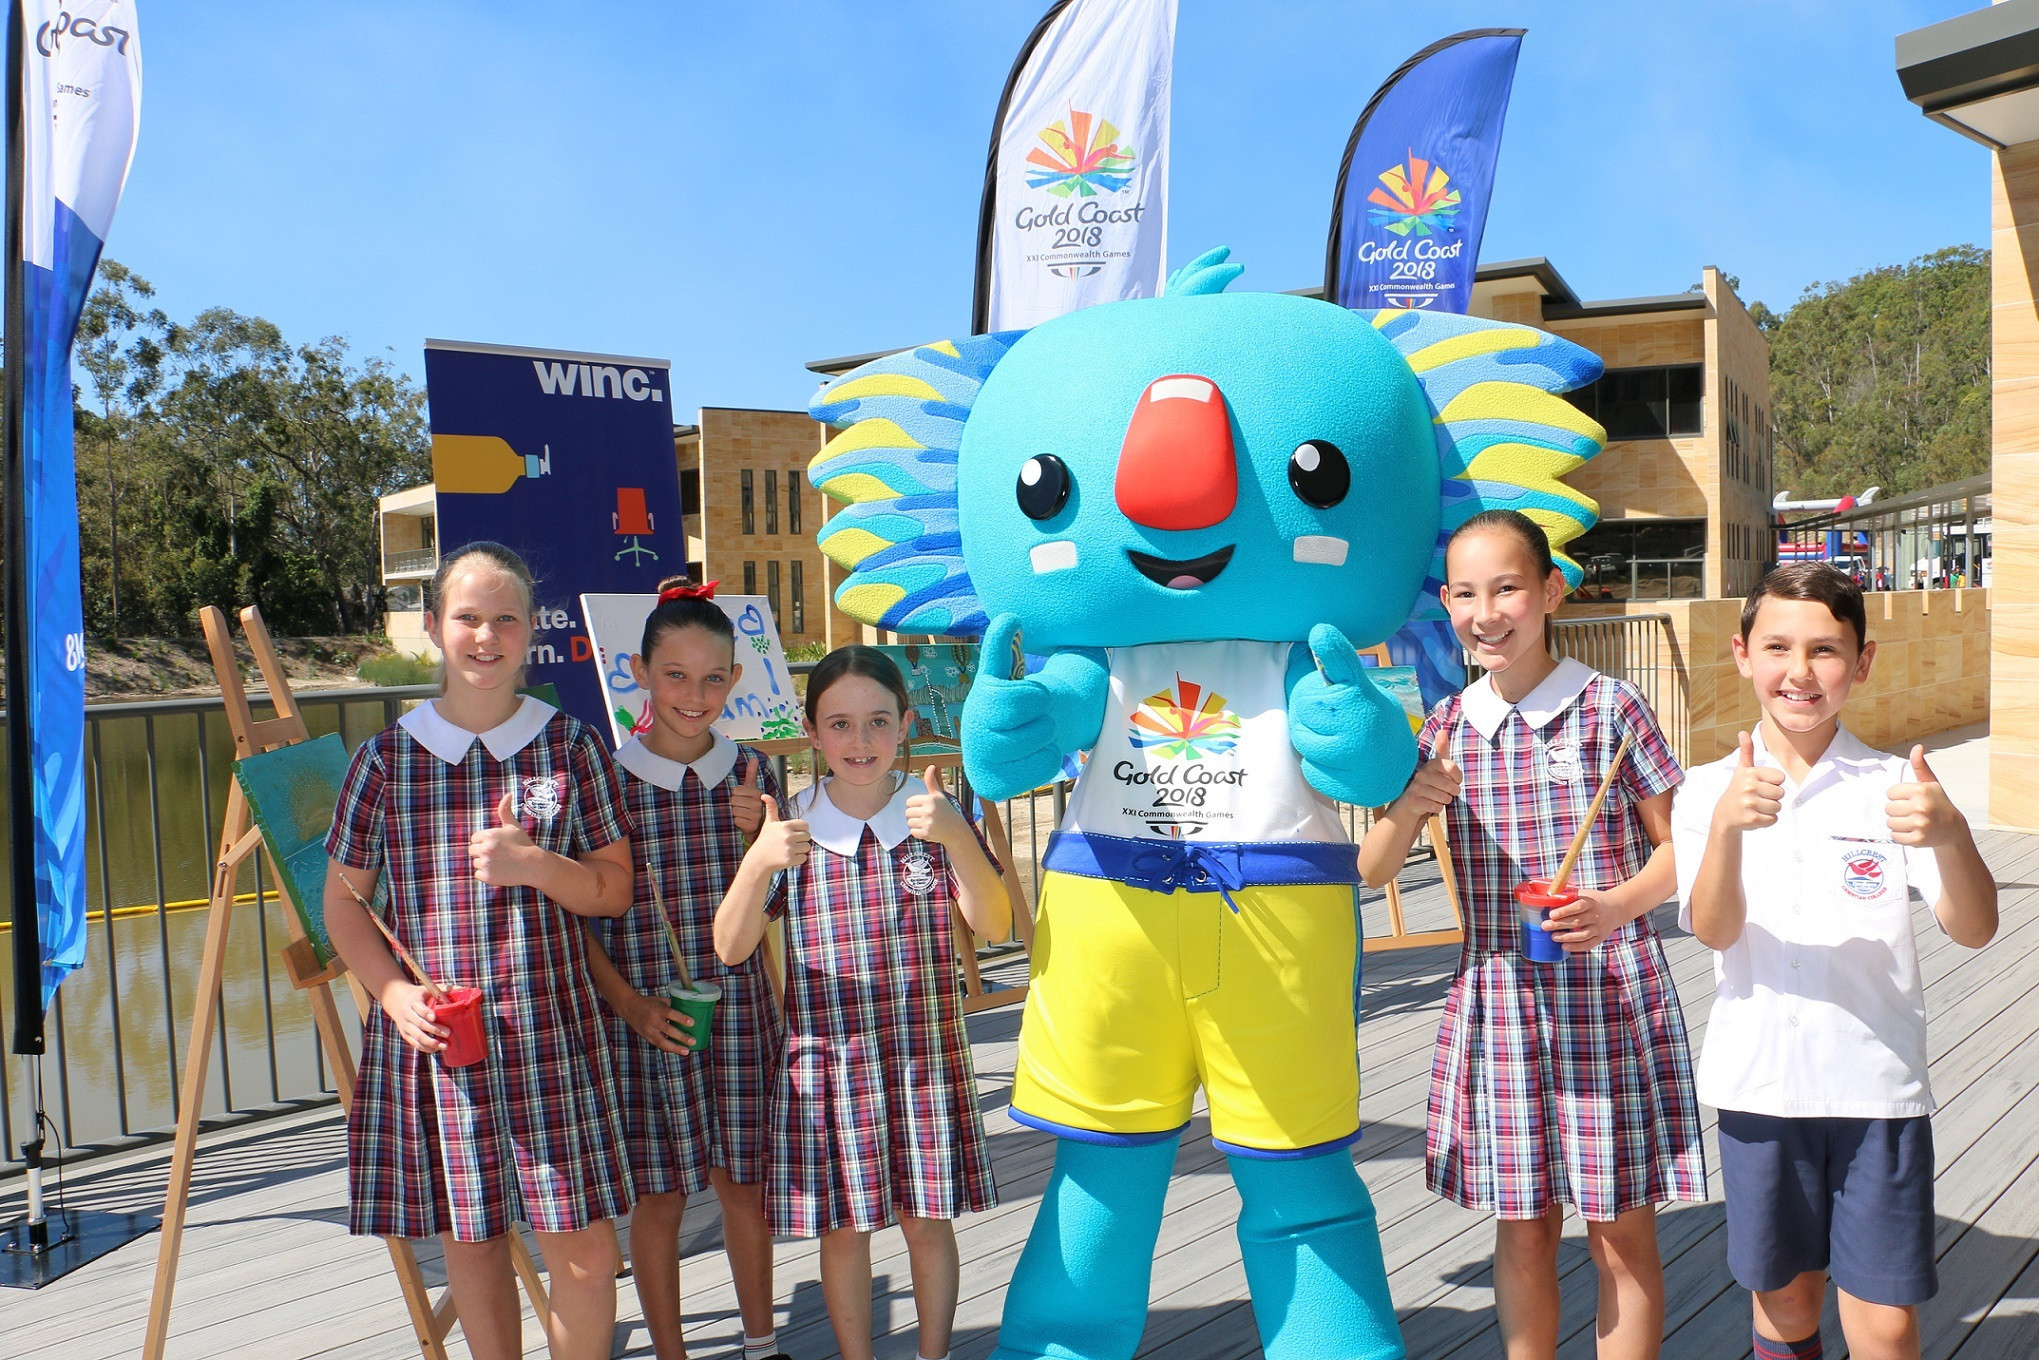 Winc will provide canvasses to support Gold Coast 2018's Schools Connect programme ©Gold Coast 2018